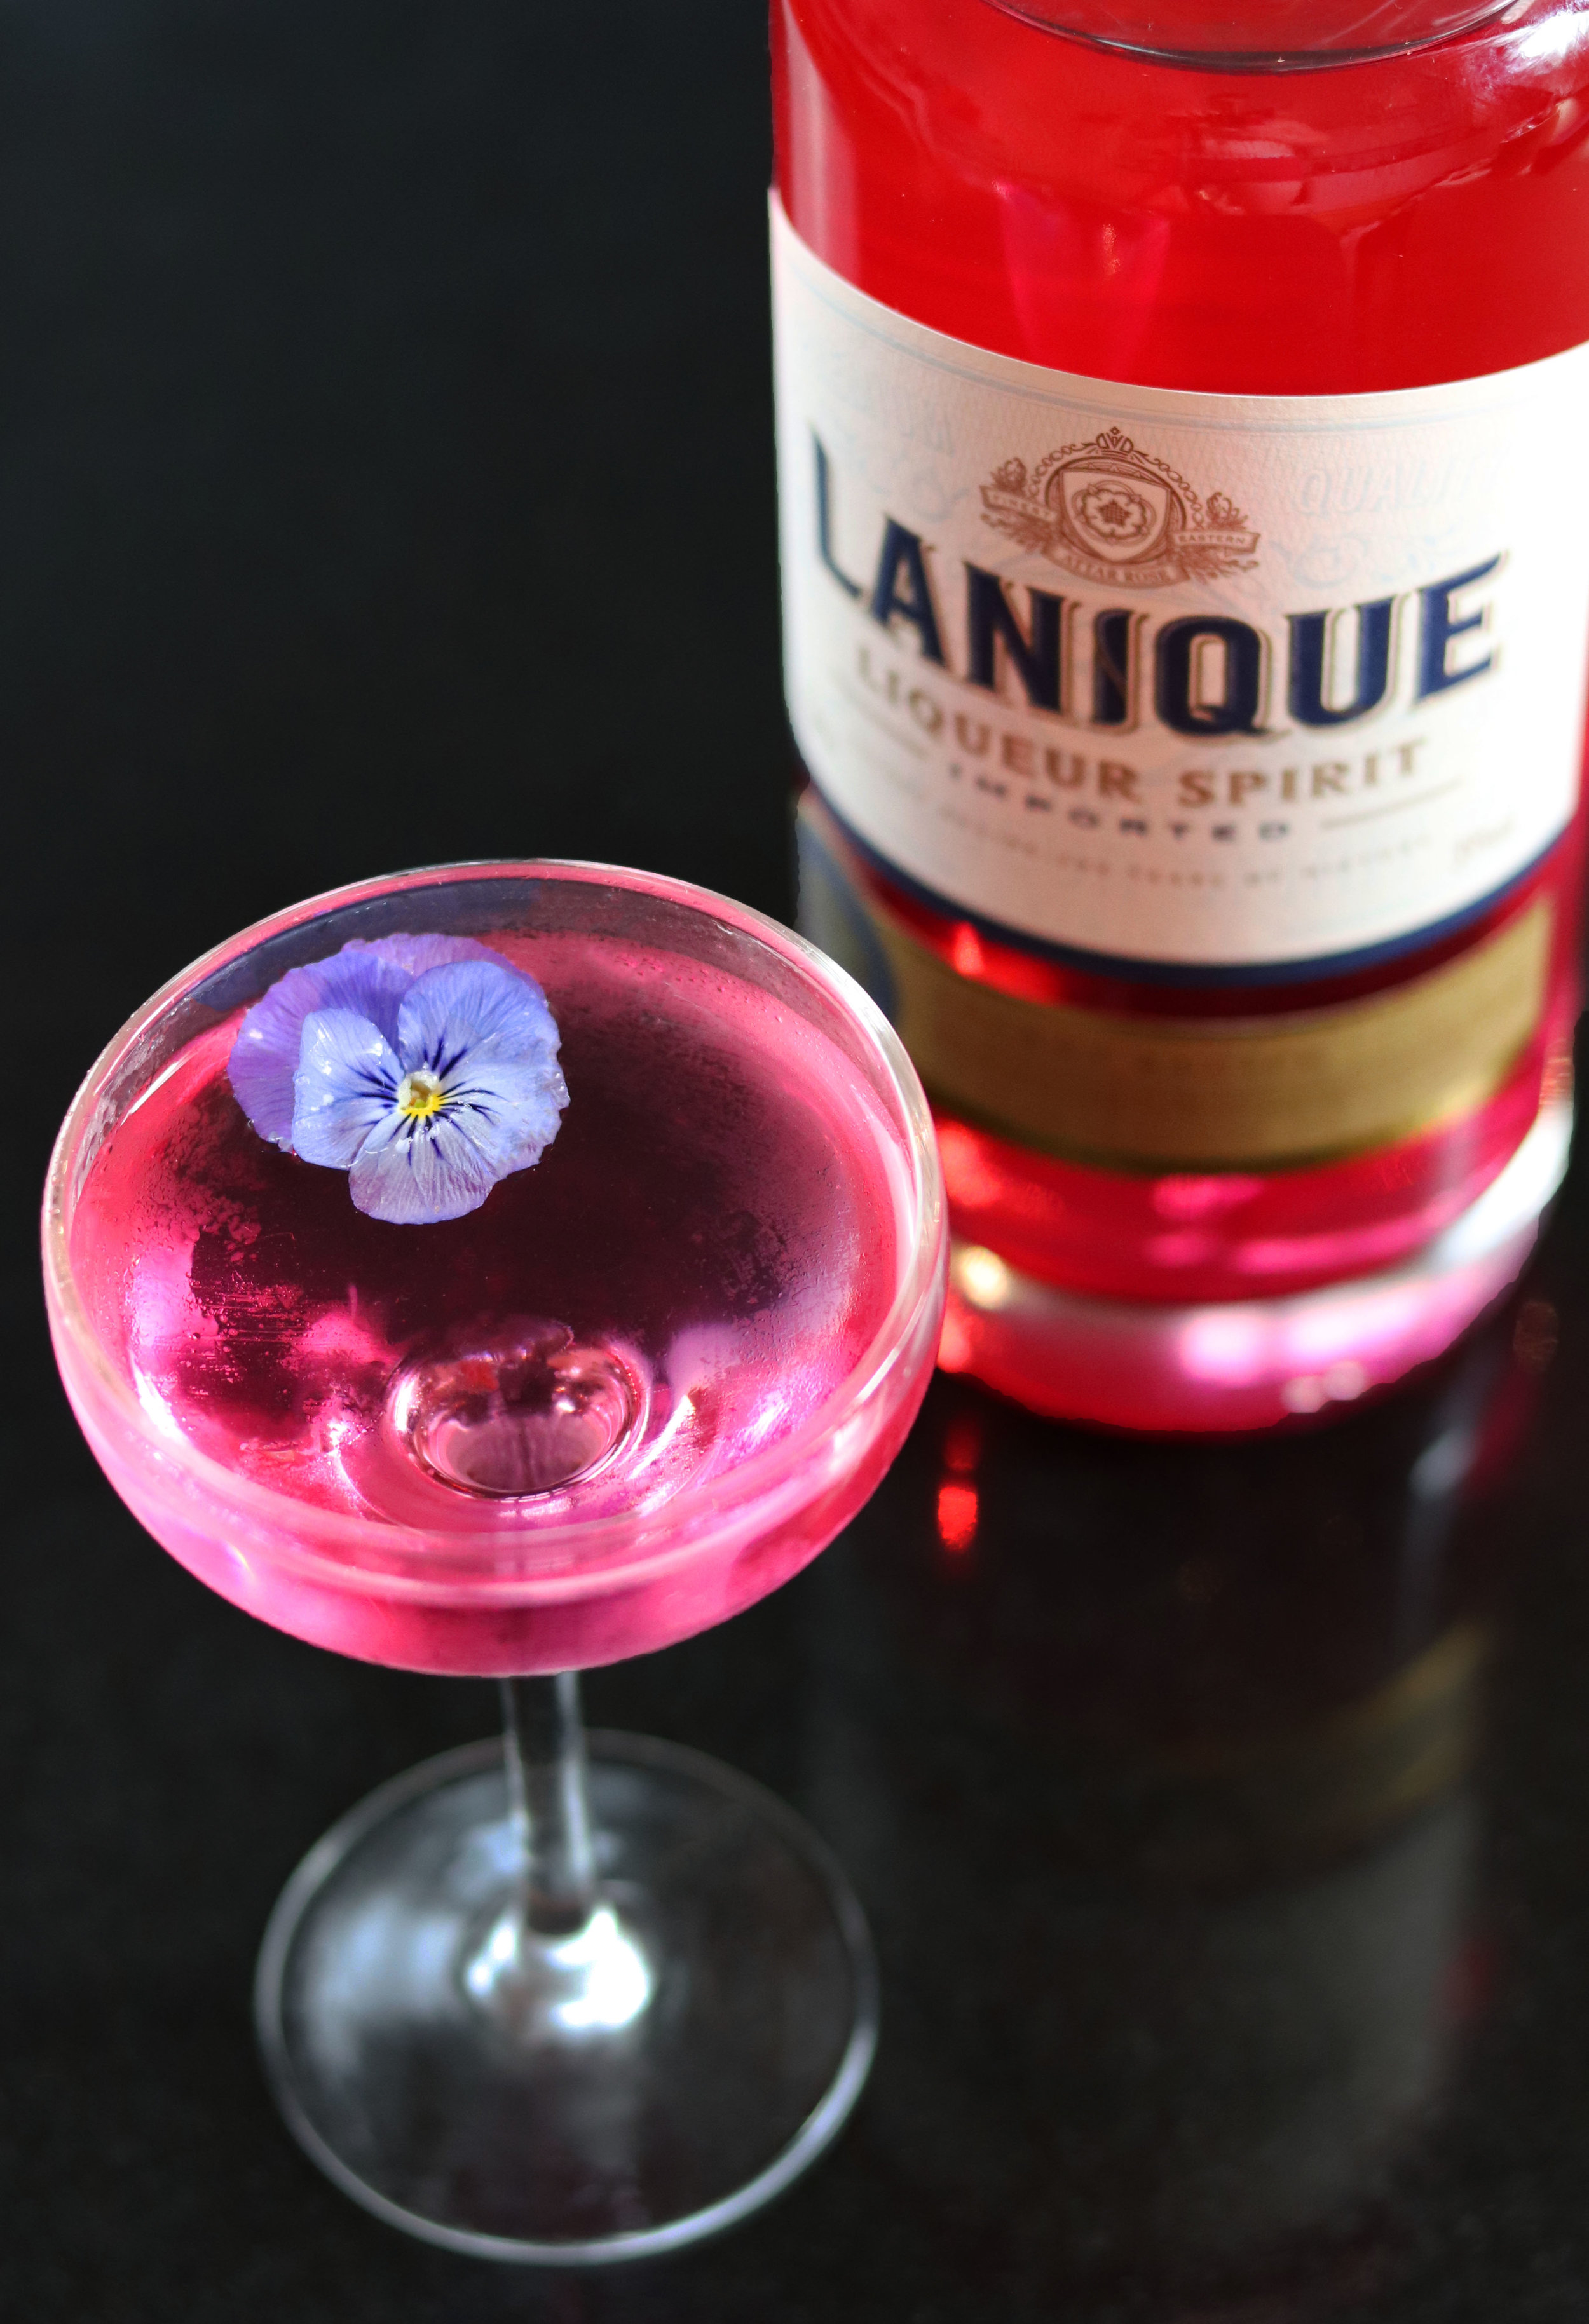 The God Mother- Created for  Lanique Rose Liqueur